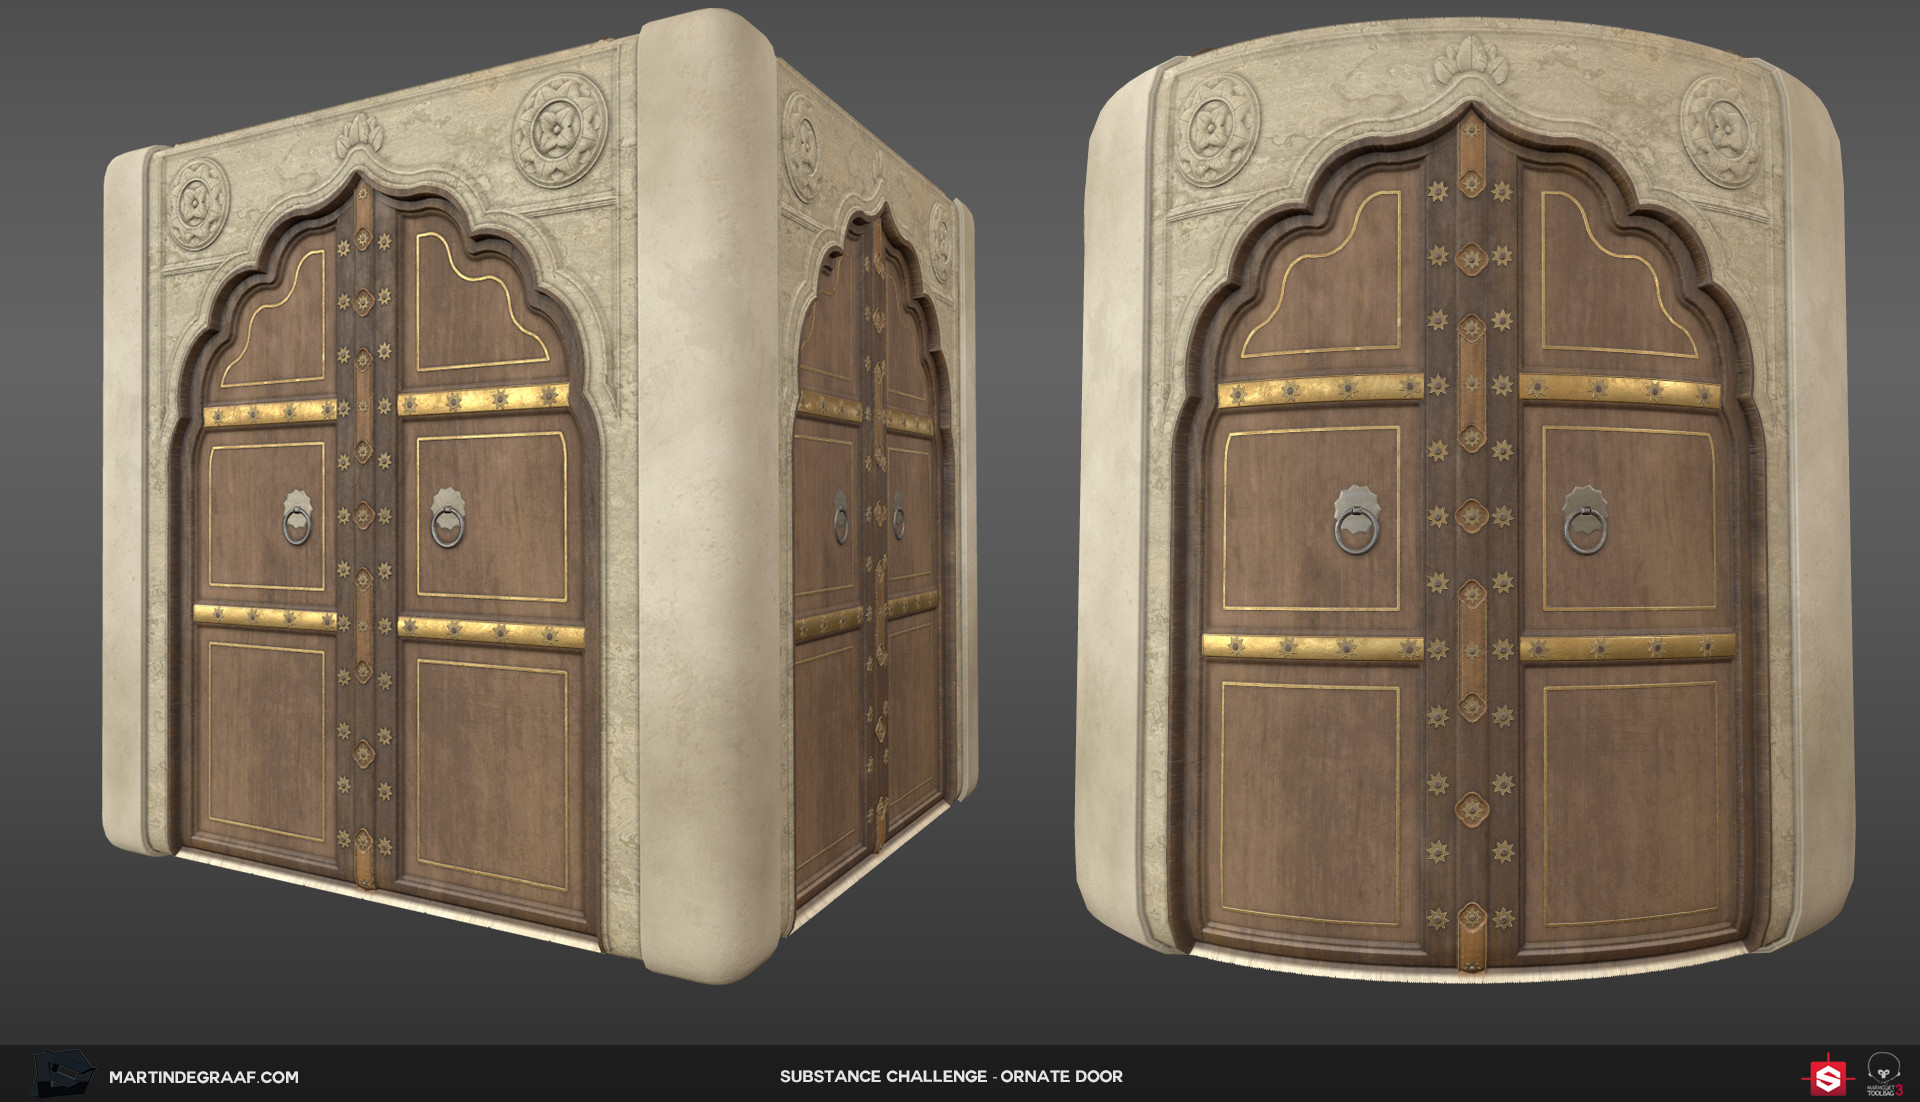 Martin de graaf substance challenge ornate door substance martin de graaf 2017